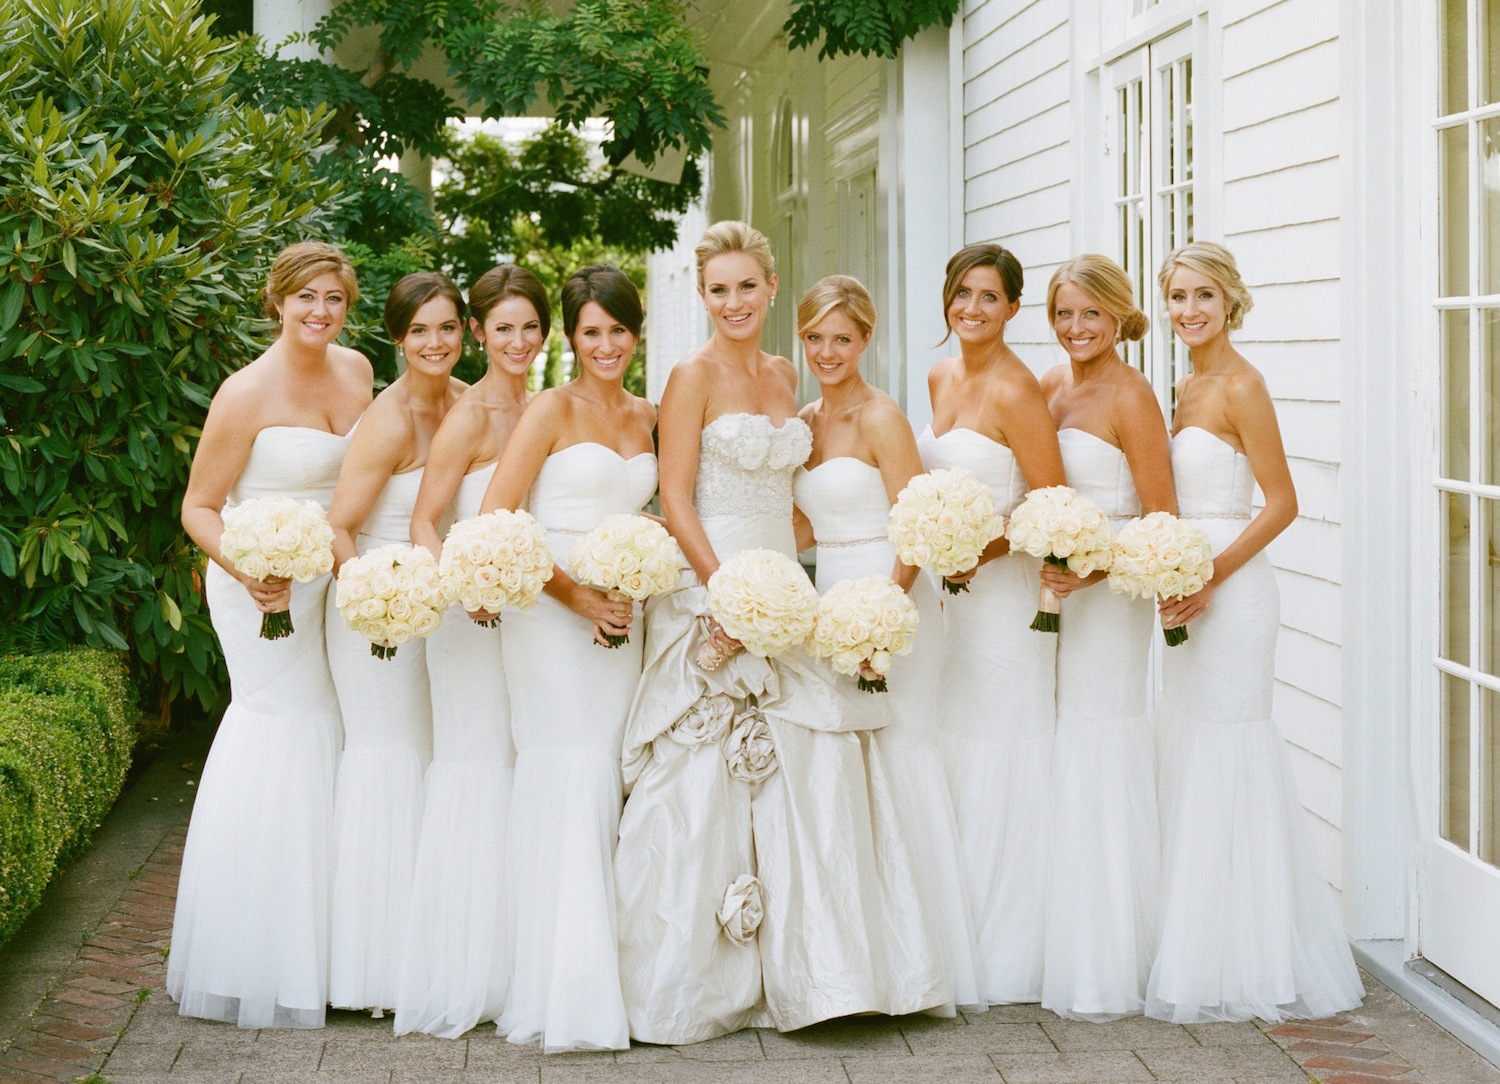 15 Beautiful Bouquet Ideas For Your Bridesmaids